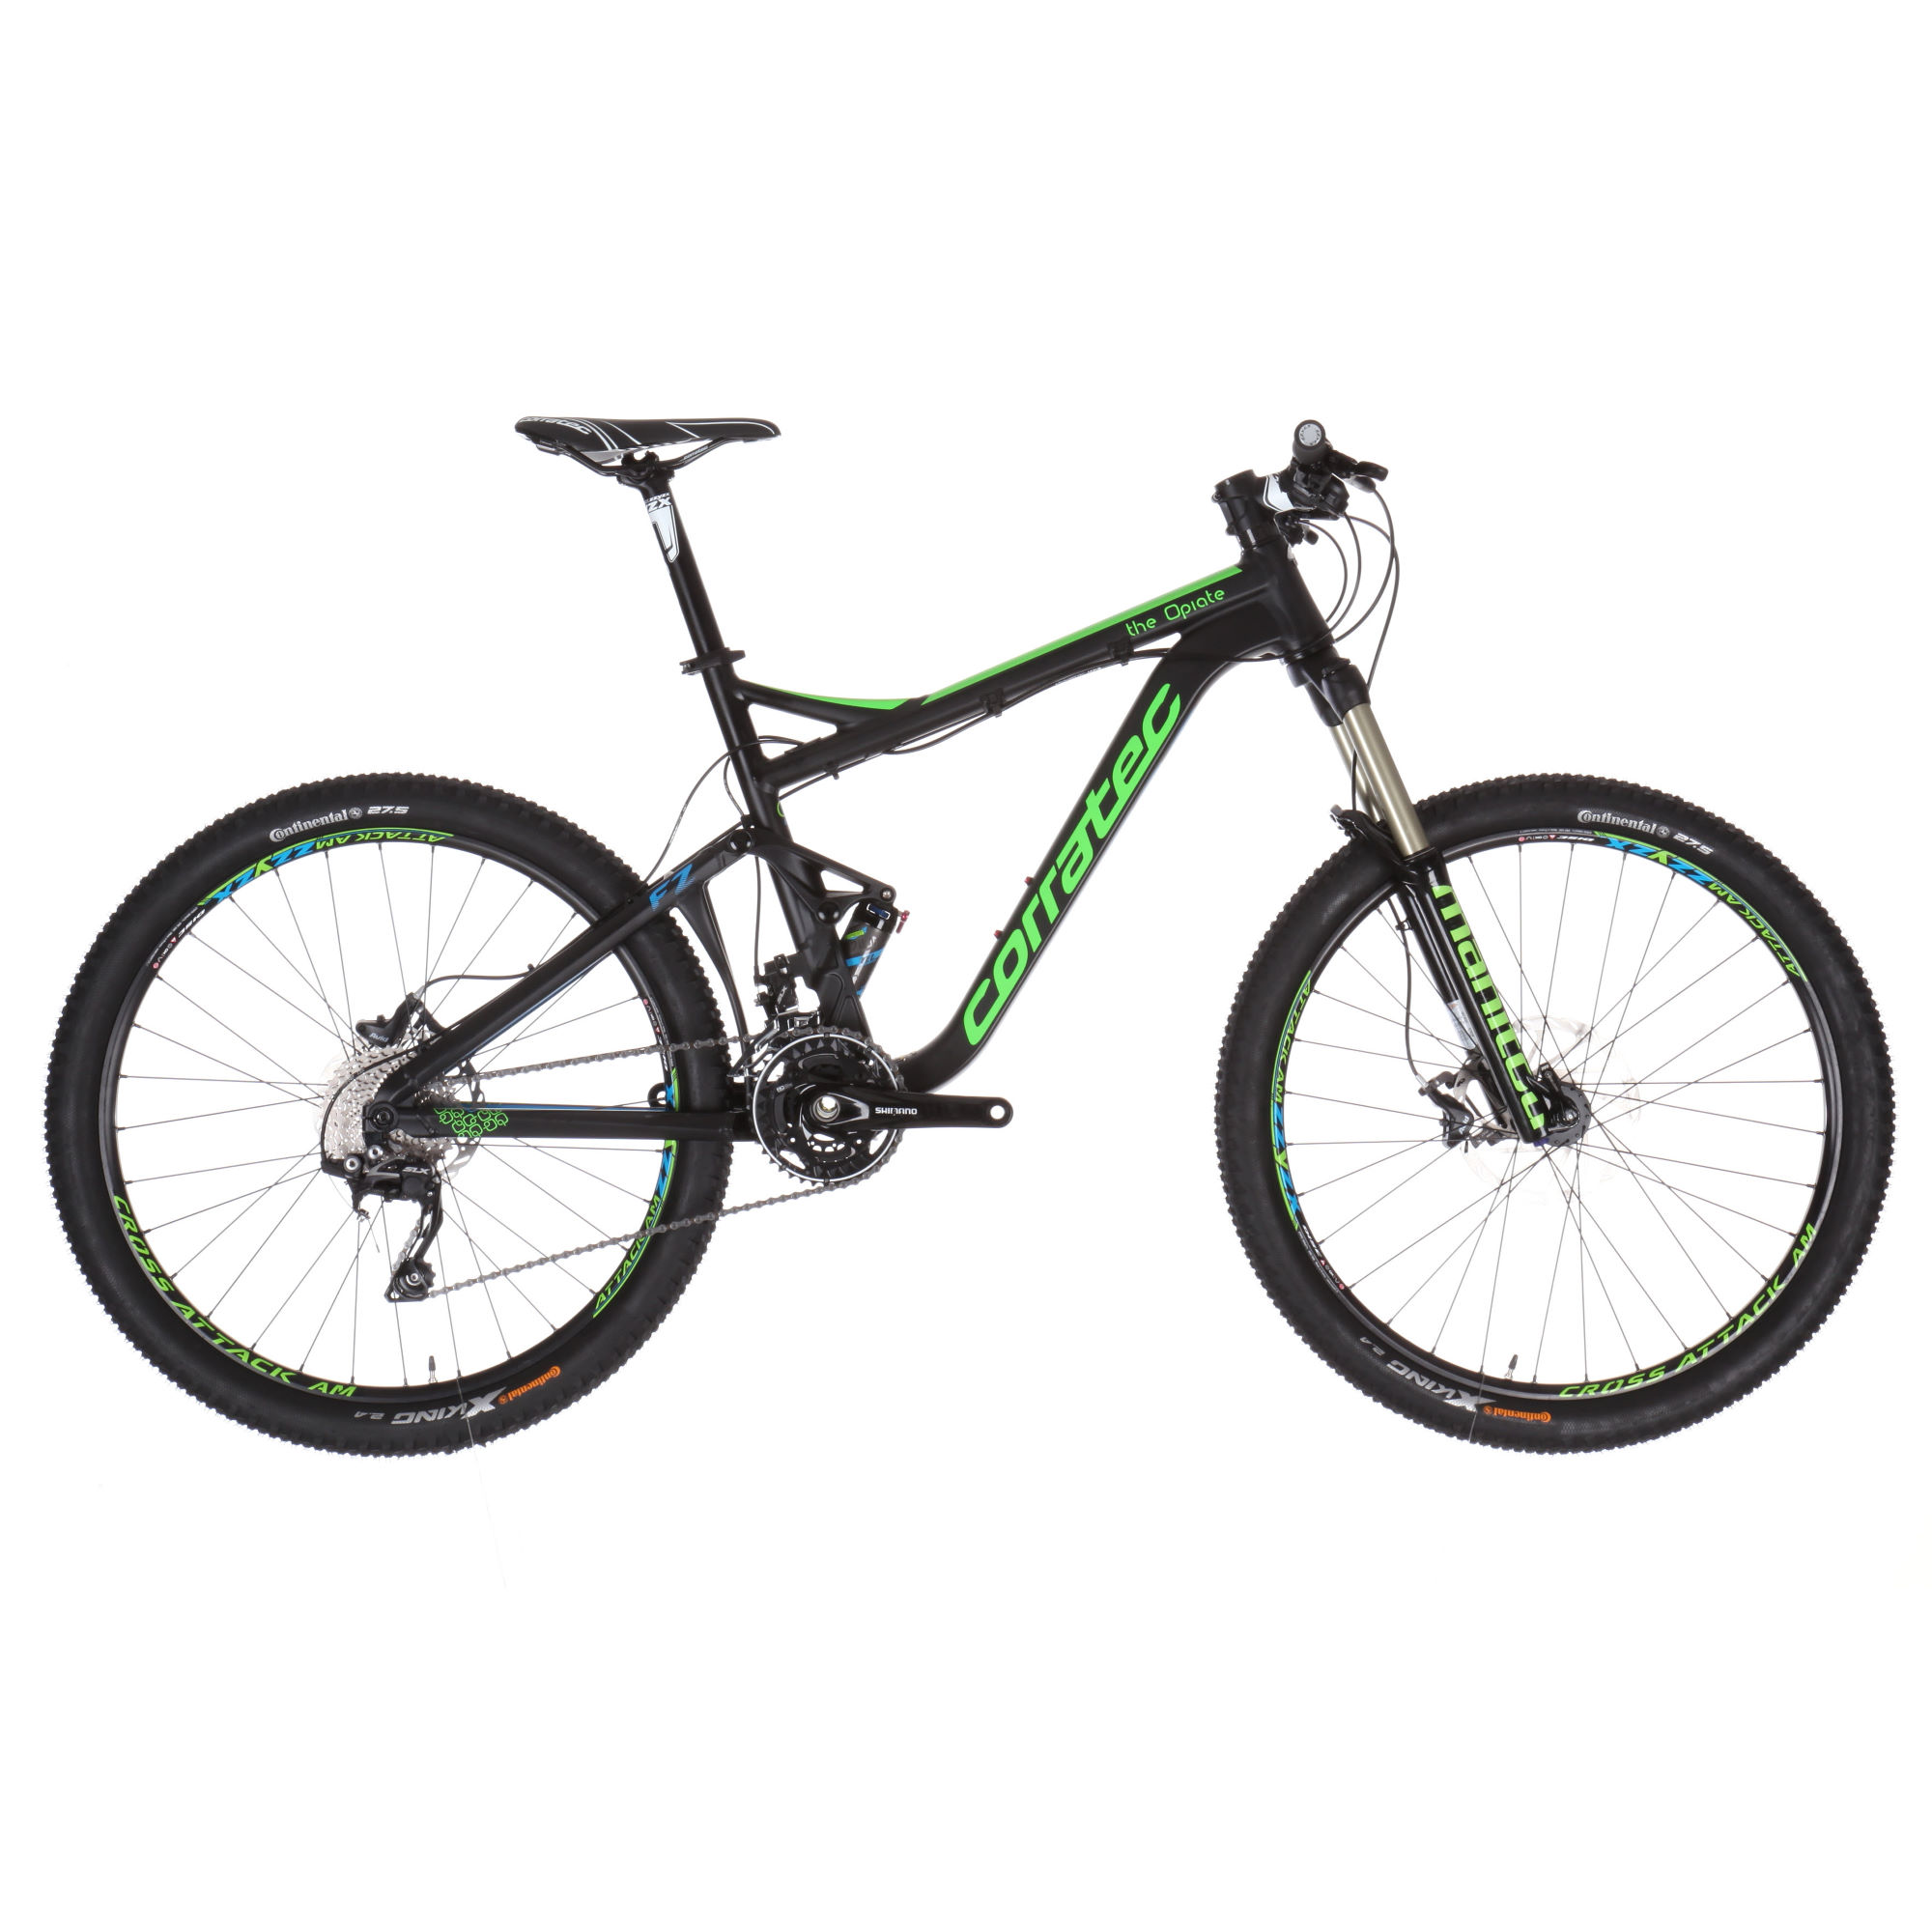 Corratec Opiate 650b Fz 2015 Full Suspension Mtb